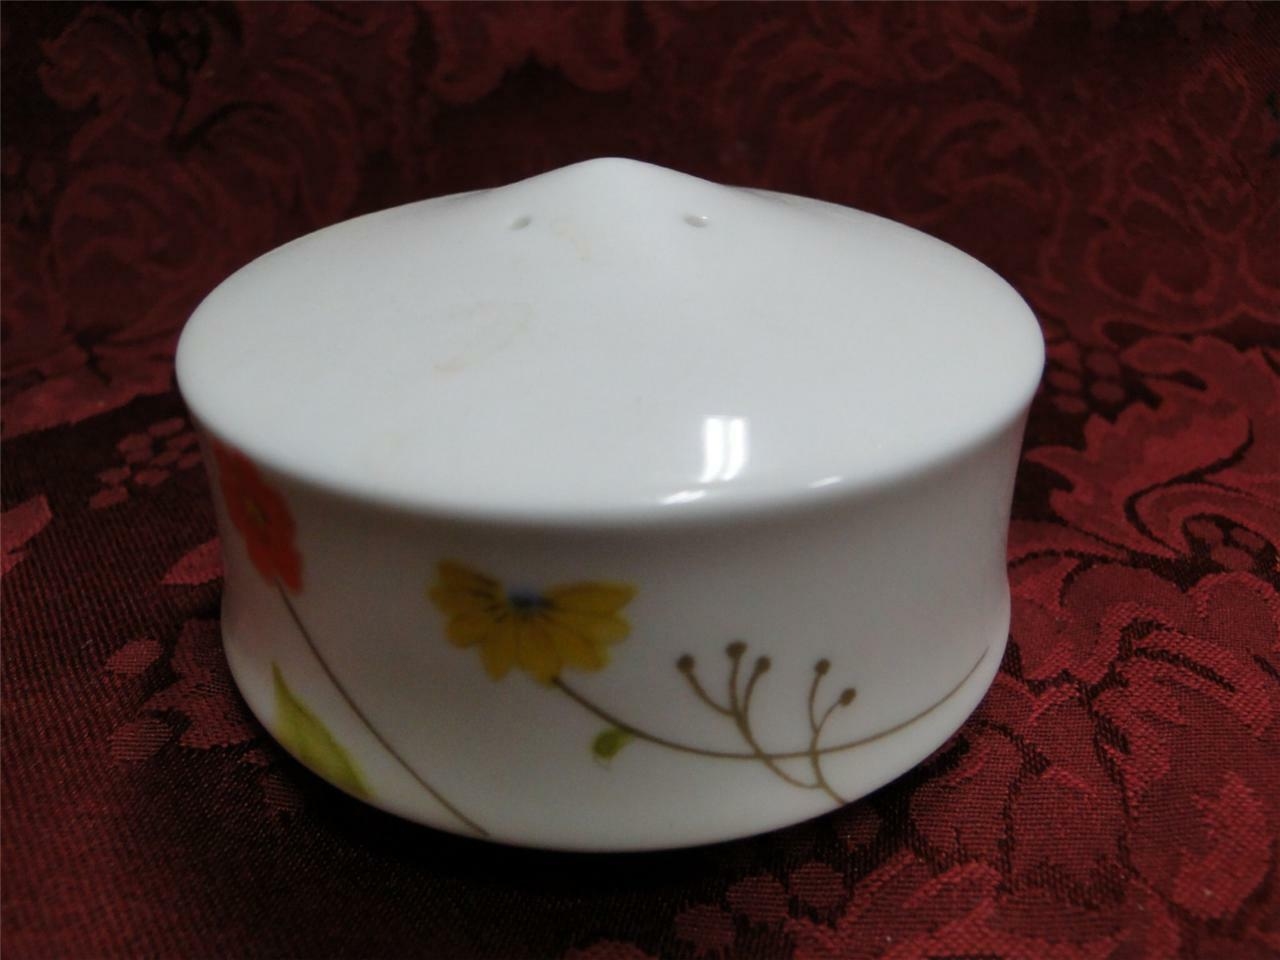 Mikasa Just Flowers, pink/blue/yellow flowers: Salt Shaker 4 Holes